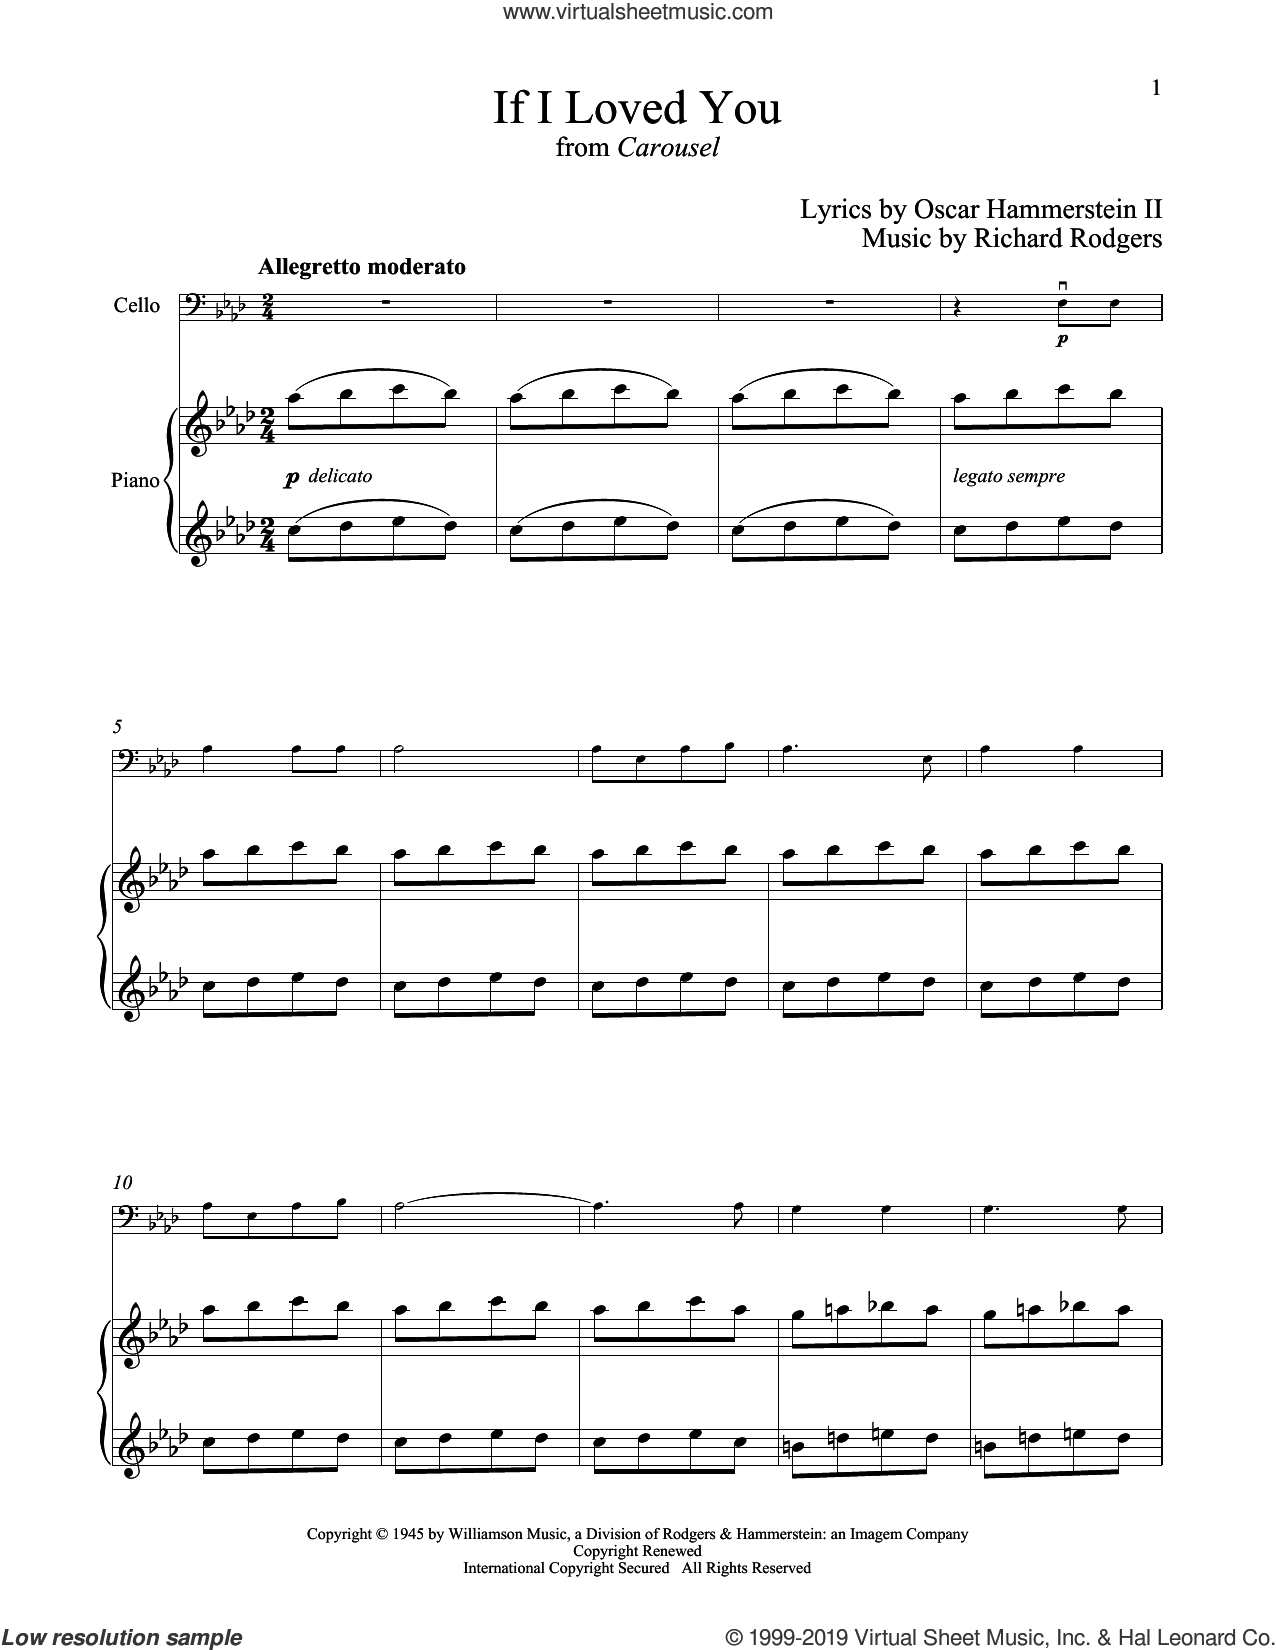 If I Loved You (from Carousel) sheet music for cello and piano by Rodgers & Hammerstein, Oscar II Hammerstein and Richard Rodgers, intermediate skill level